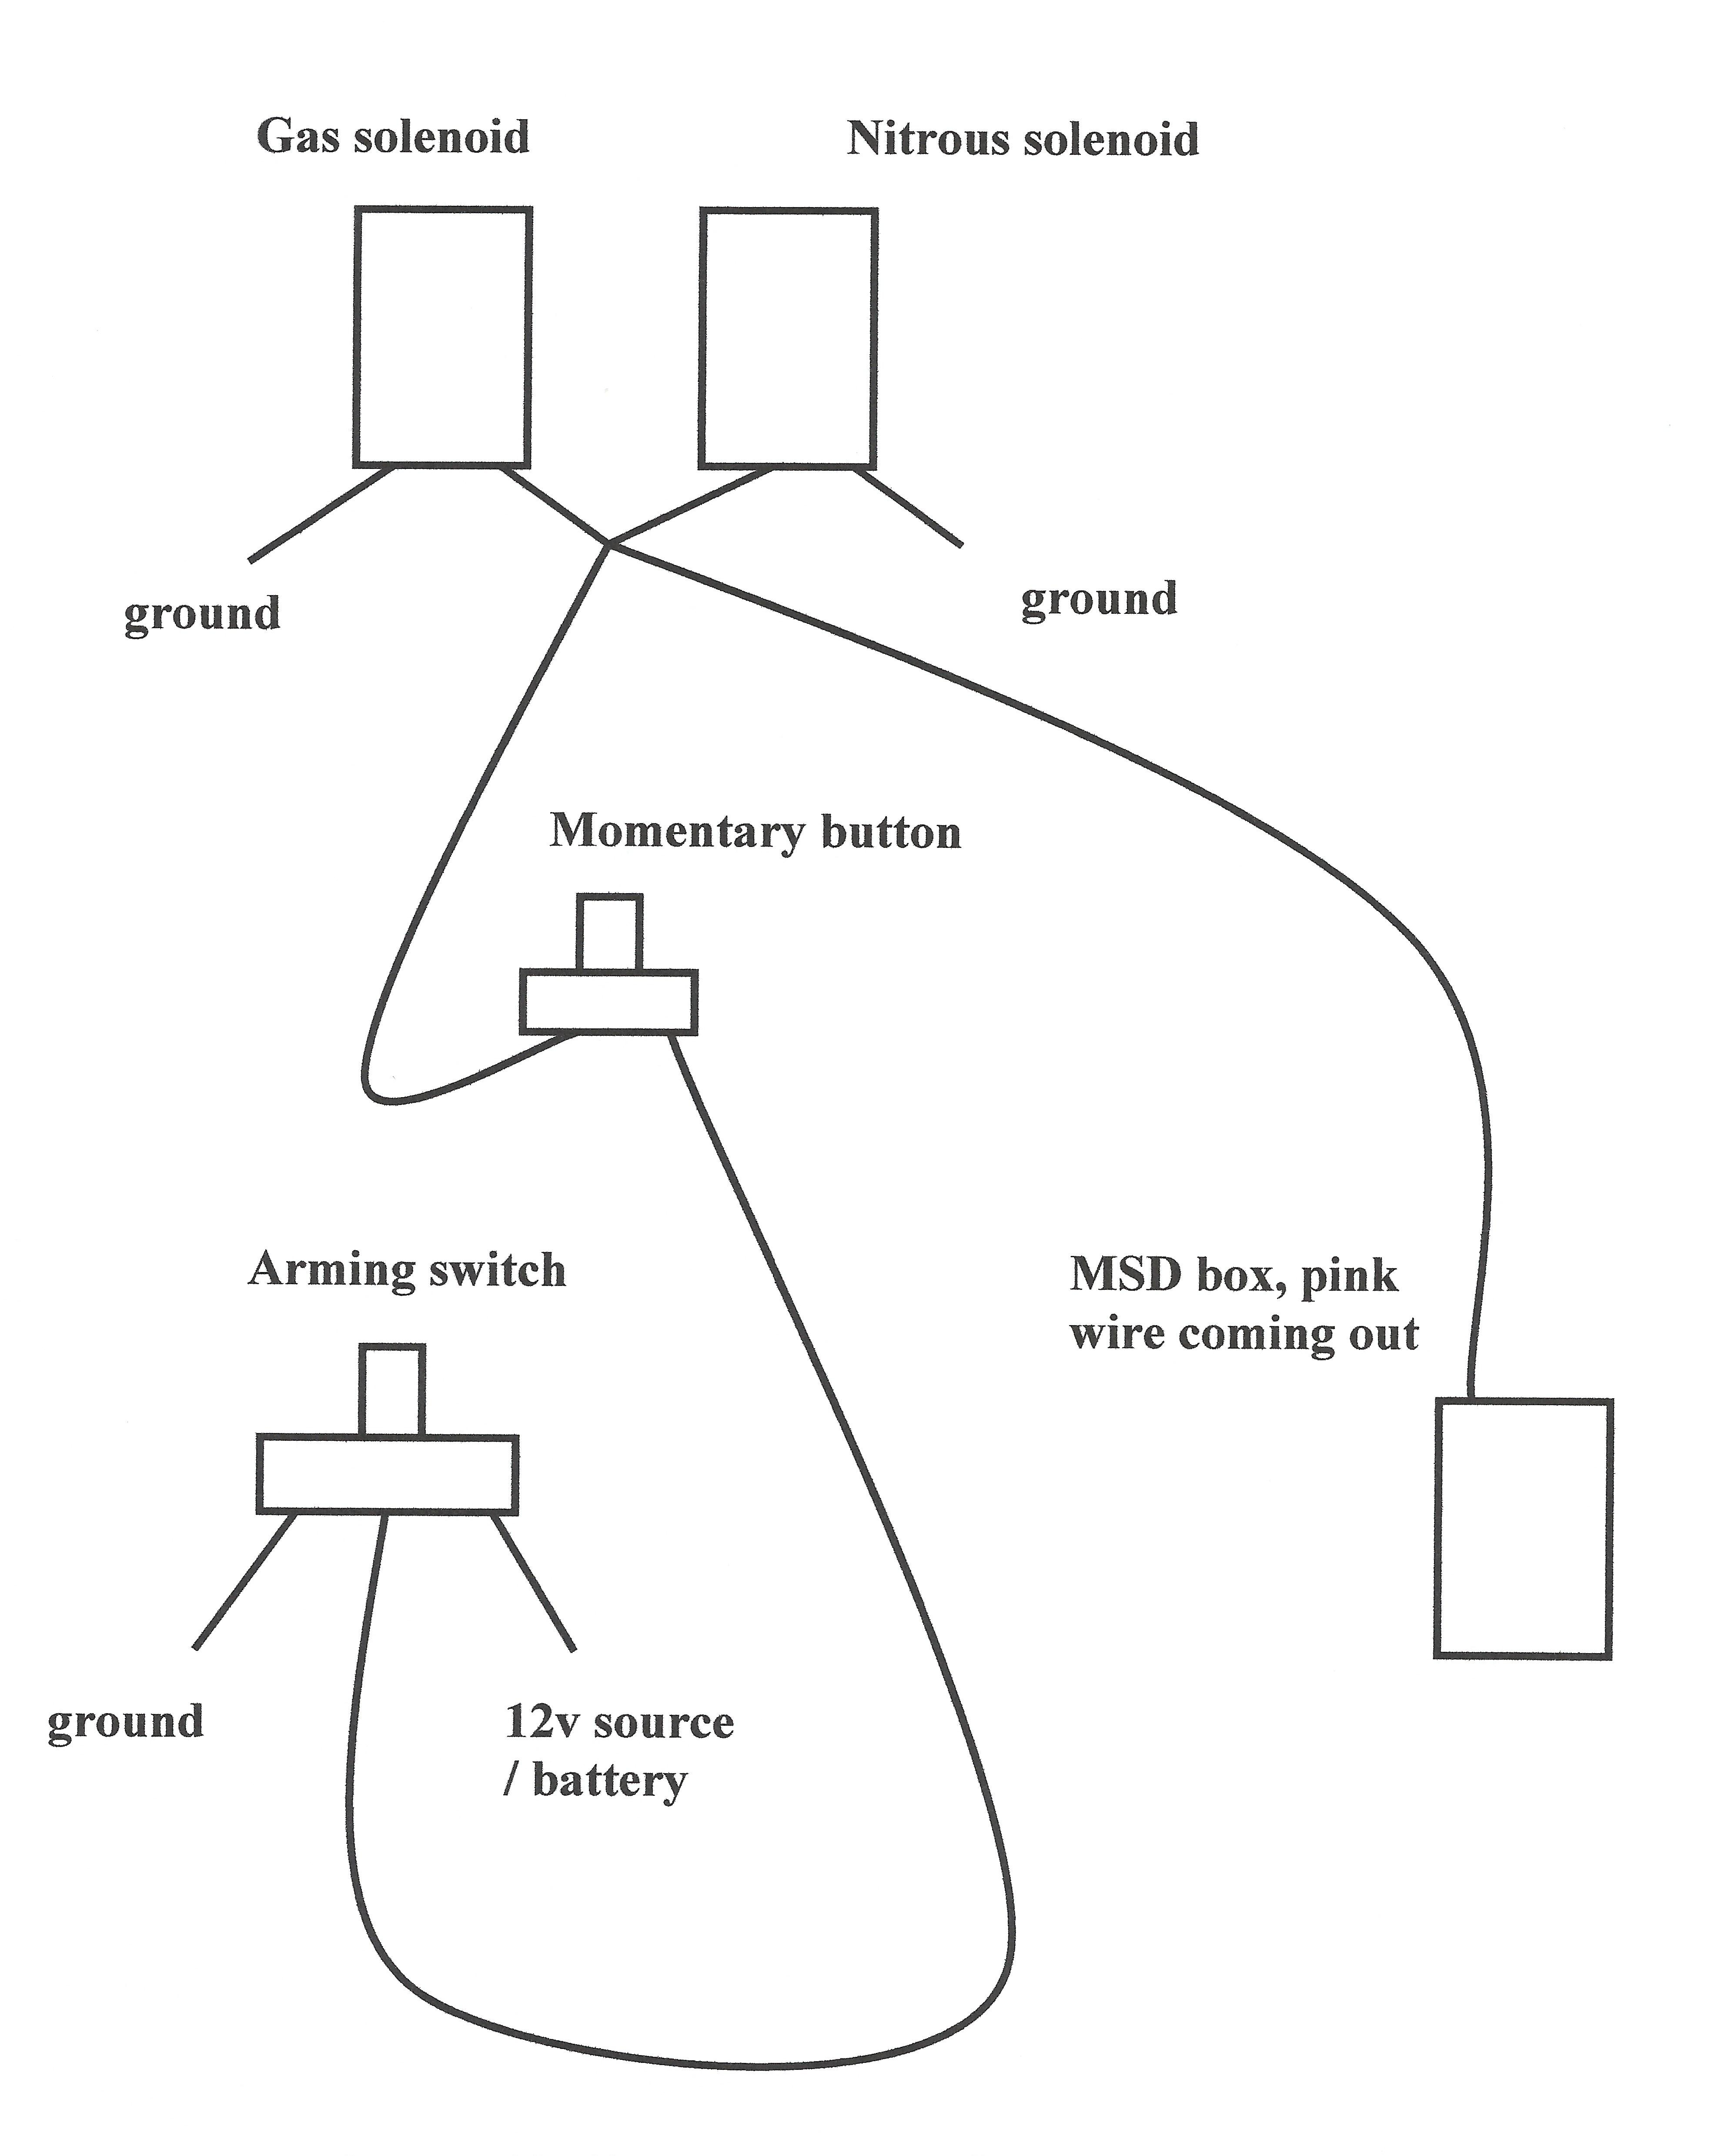 Msd Nitrous Wiring Diagrams nitrous wiring diagram with ... on race car diagram, nos nitrous wot relay with diagram, nitrous control panel, ls1 fuel system diagram, engine components diagram, nitrous fuel system diagram, nitrous oxide system diagram, nitrous solenoid diagram, nitrous purge wiring, nitrous plumbing diagram, line lock diagram,